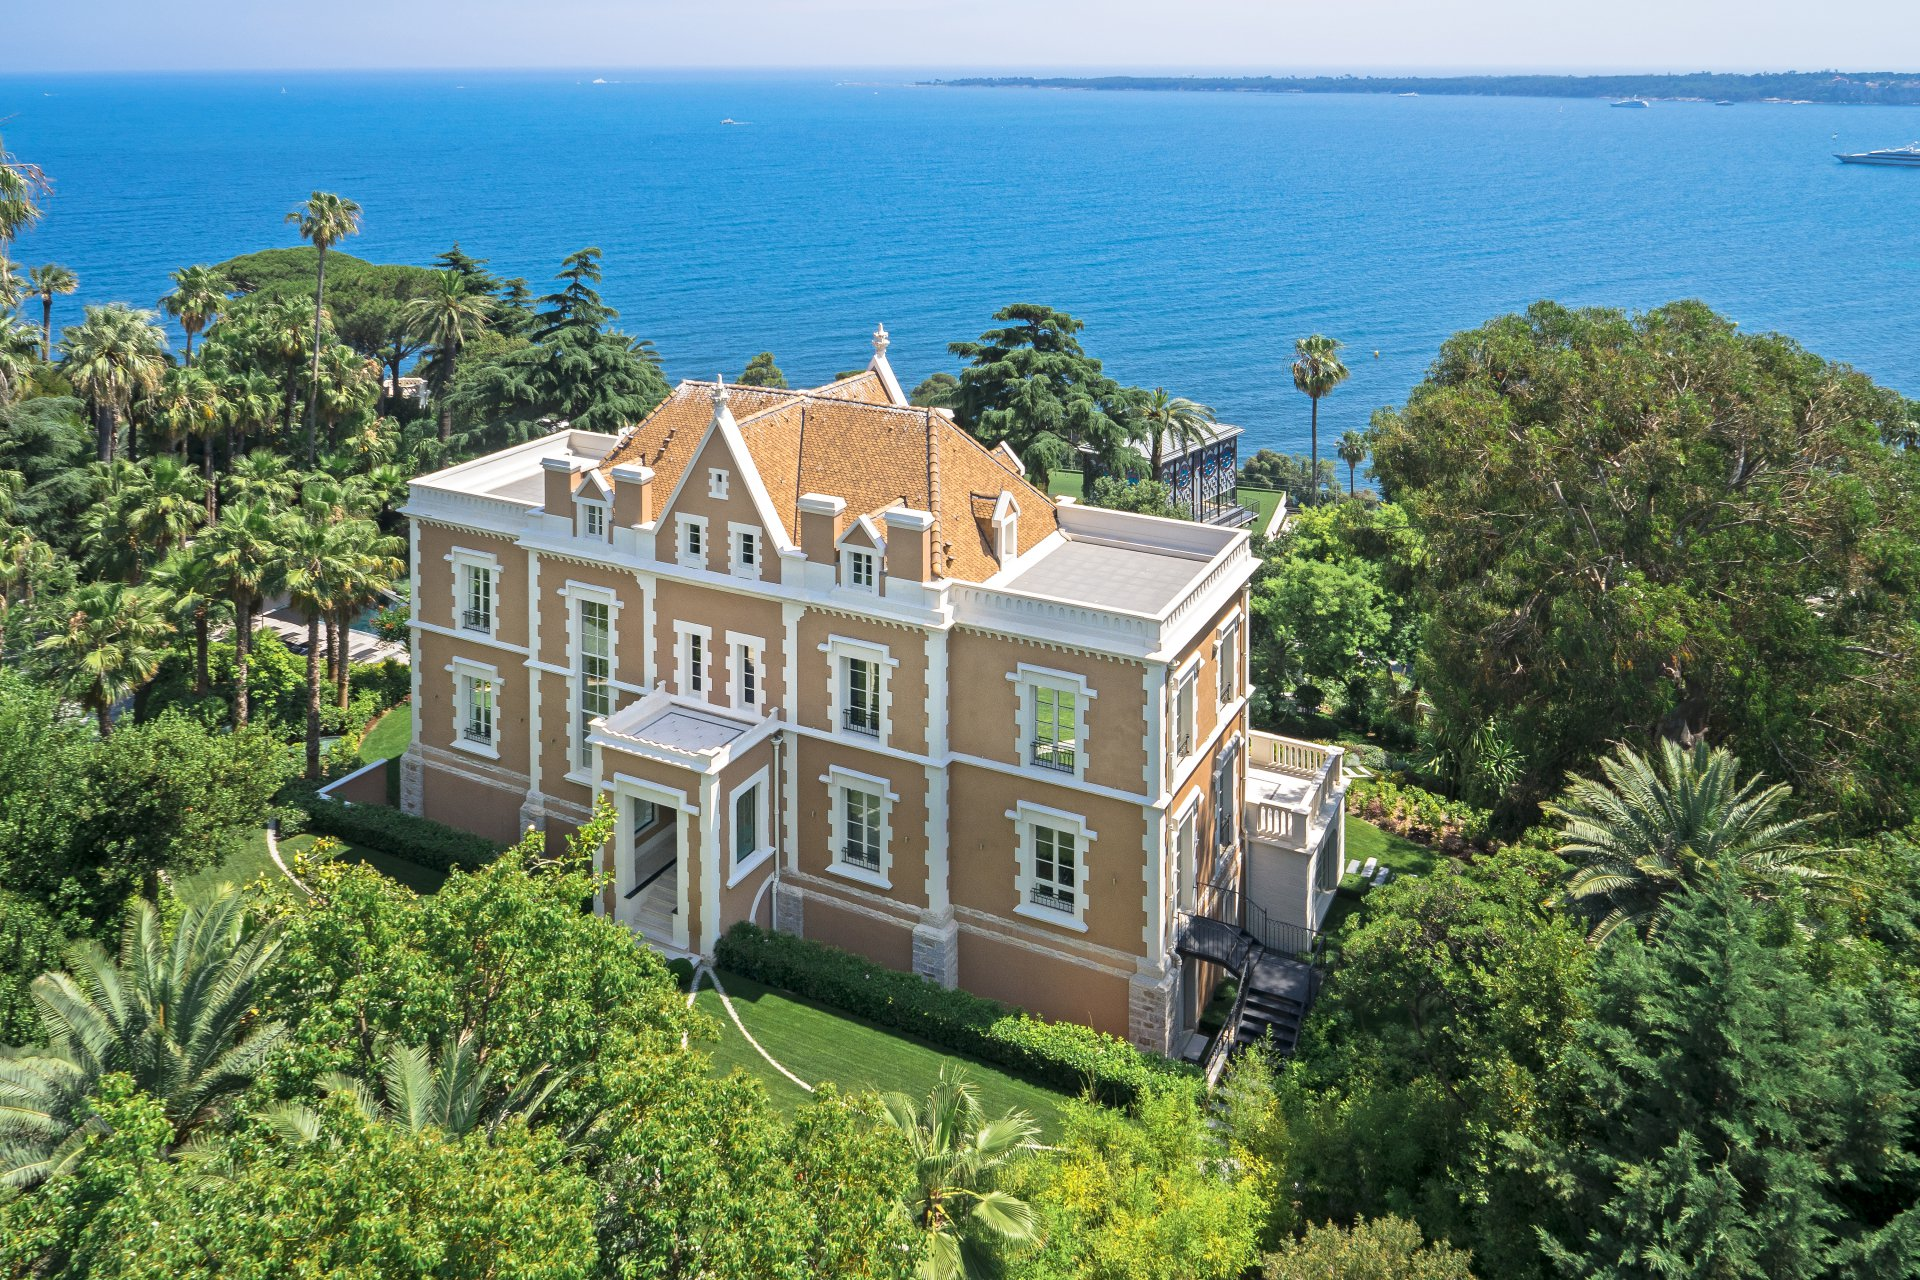 Château Soligny is a magnificent neoclassical castle on two acres of landscaped parkland with panoramic views of the Lérins Islands, Cap d'Antibes, Esterel mountains, and the bay of Cannes.